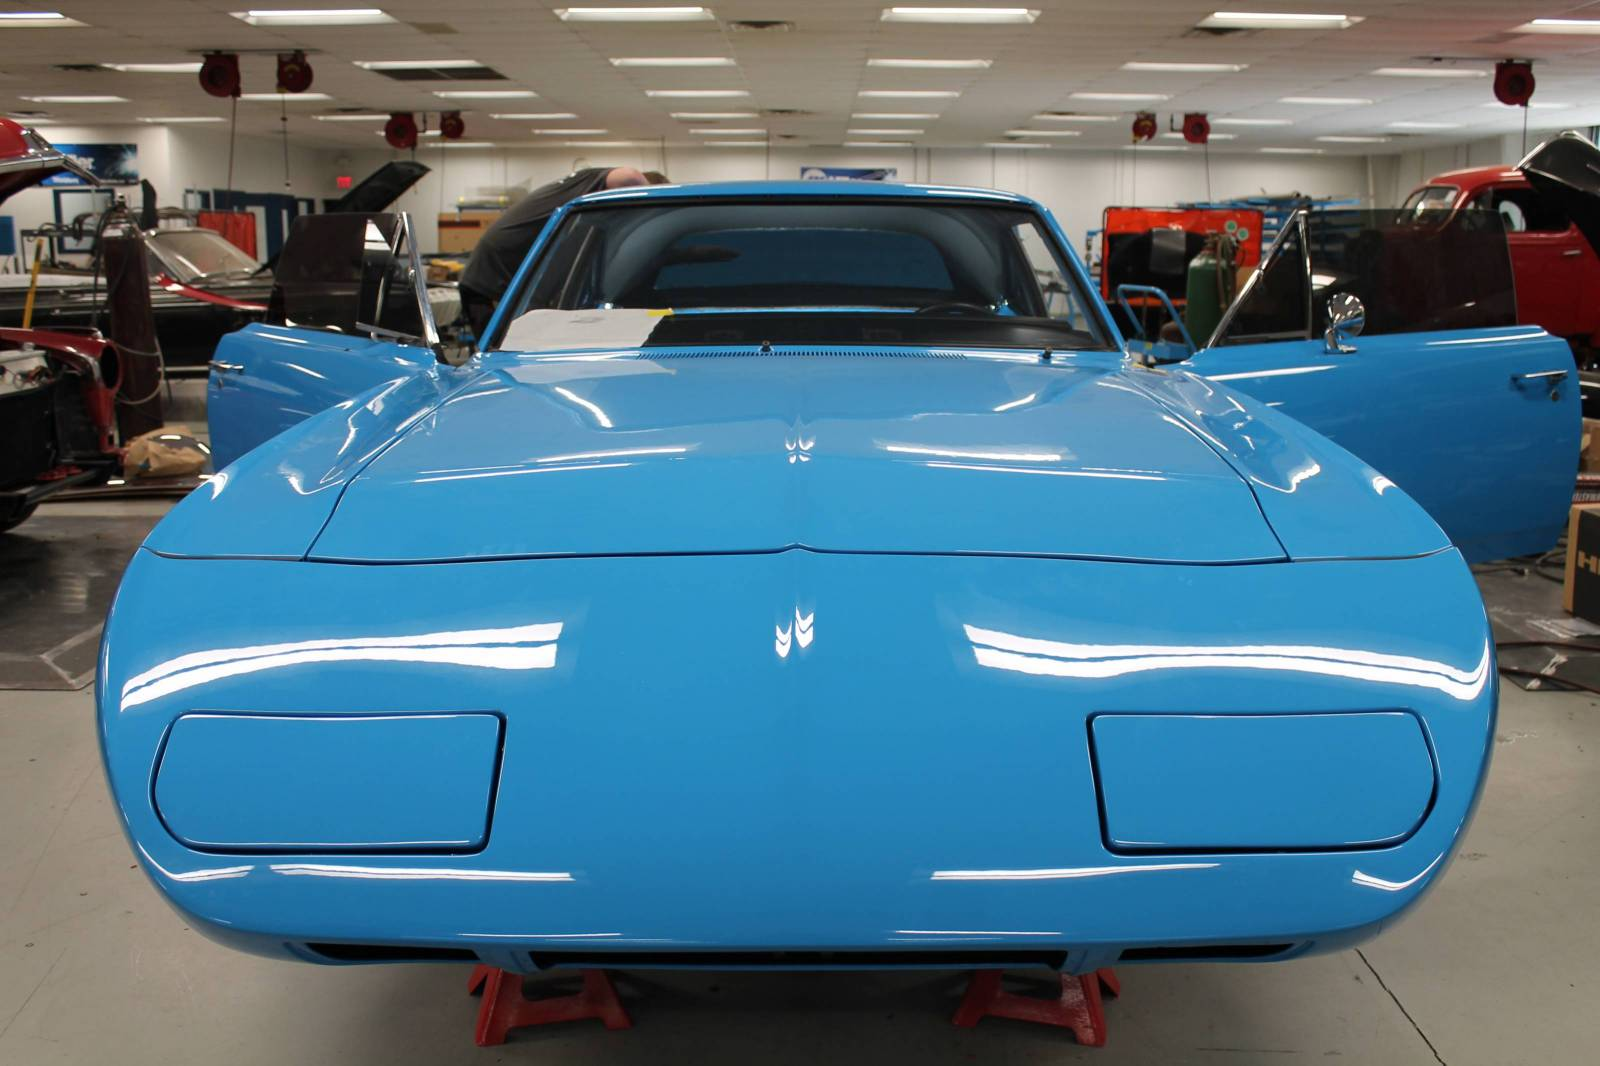 1970 Plymouth Superbird Clone with a 392 ci HEMI V8 04 1970 superbird wiring harness wiring diagrams